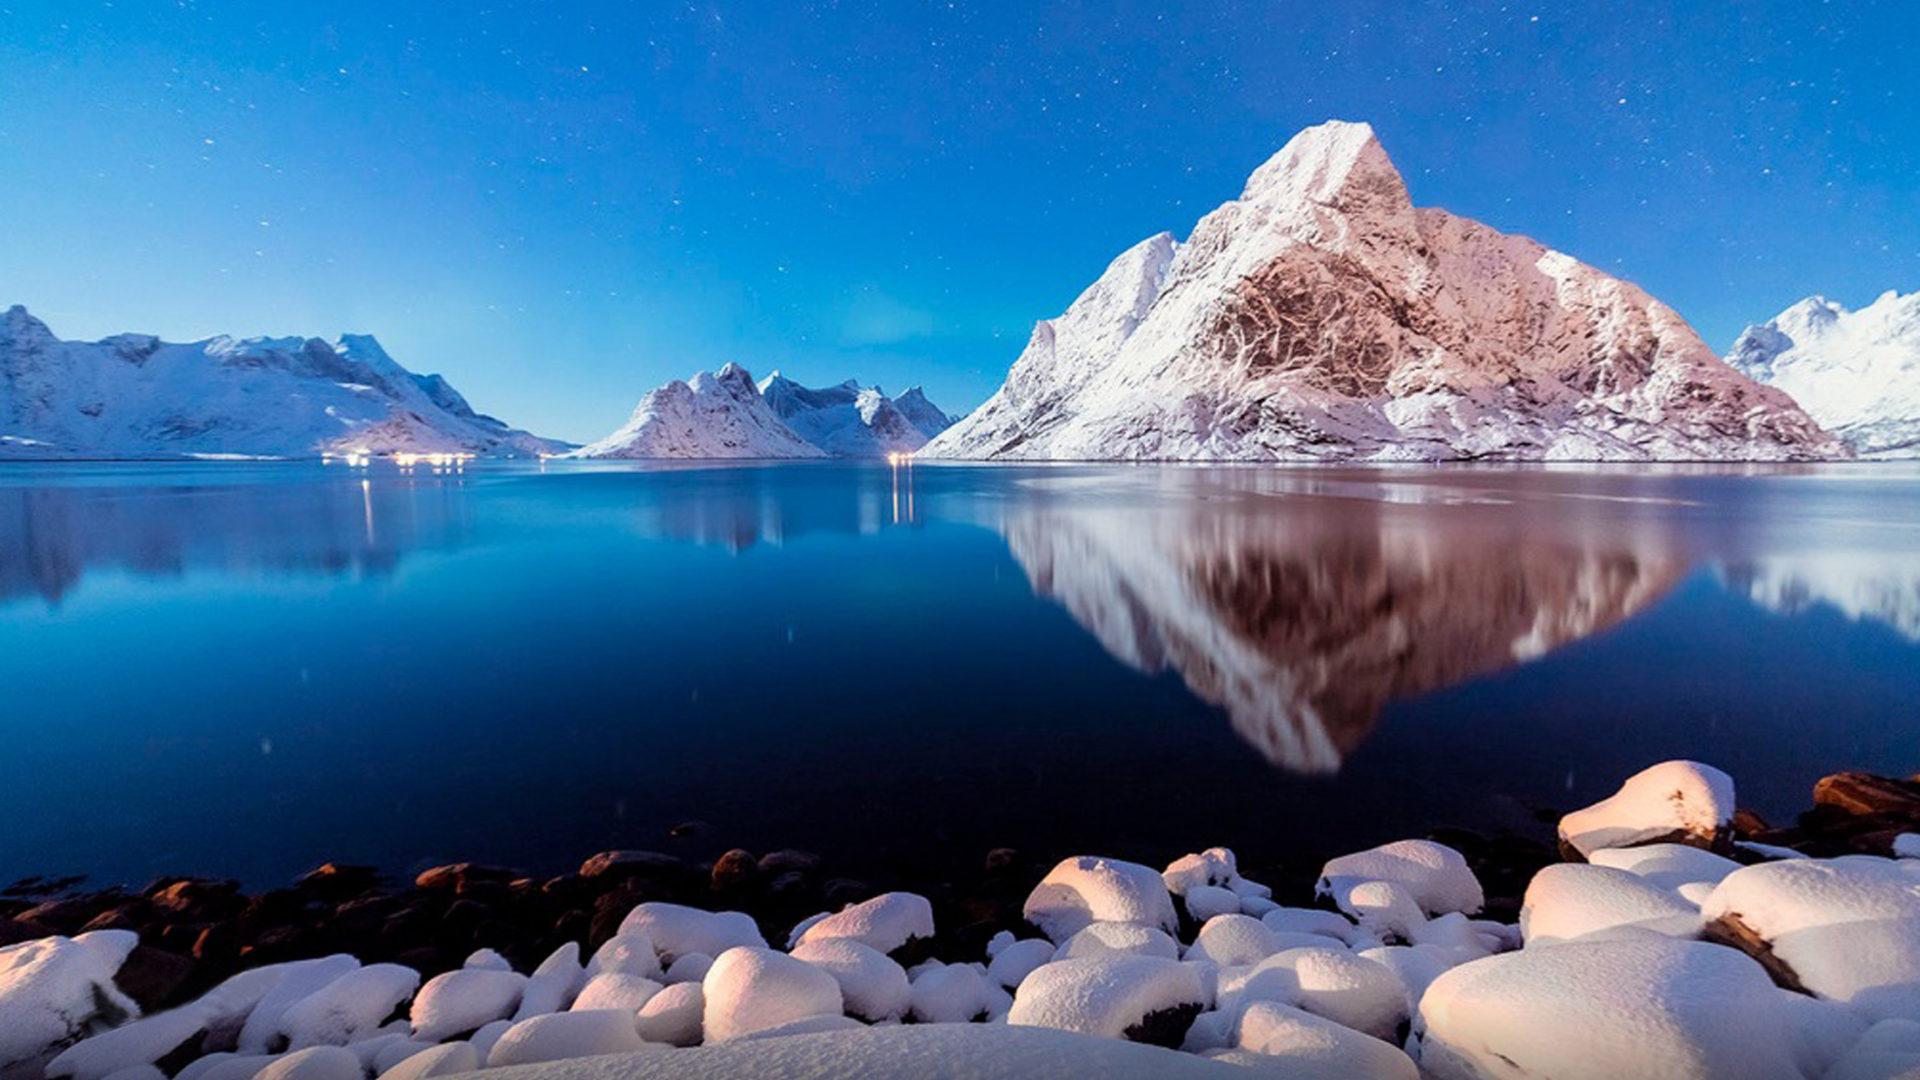 Fall Mountains Hd Wallpaper 13 Winter Peaceful Lake Shore Stones Snow Mountains Blue